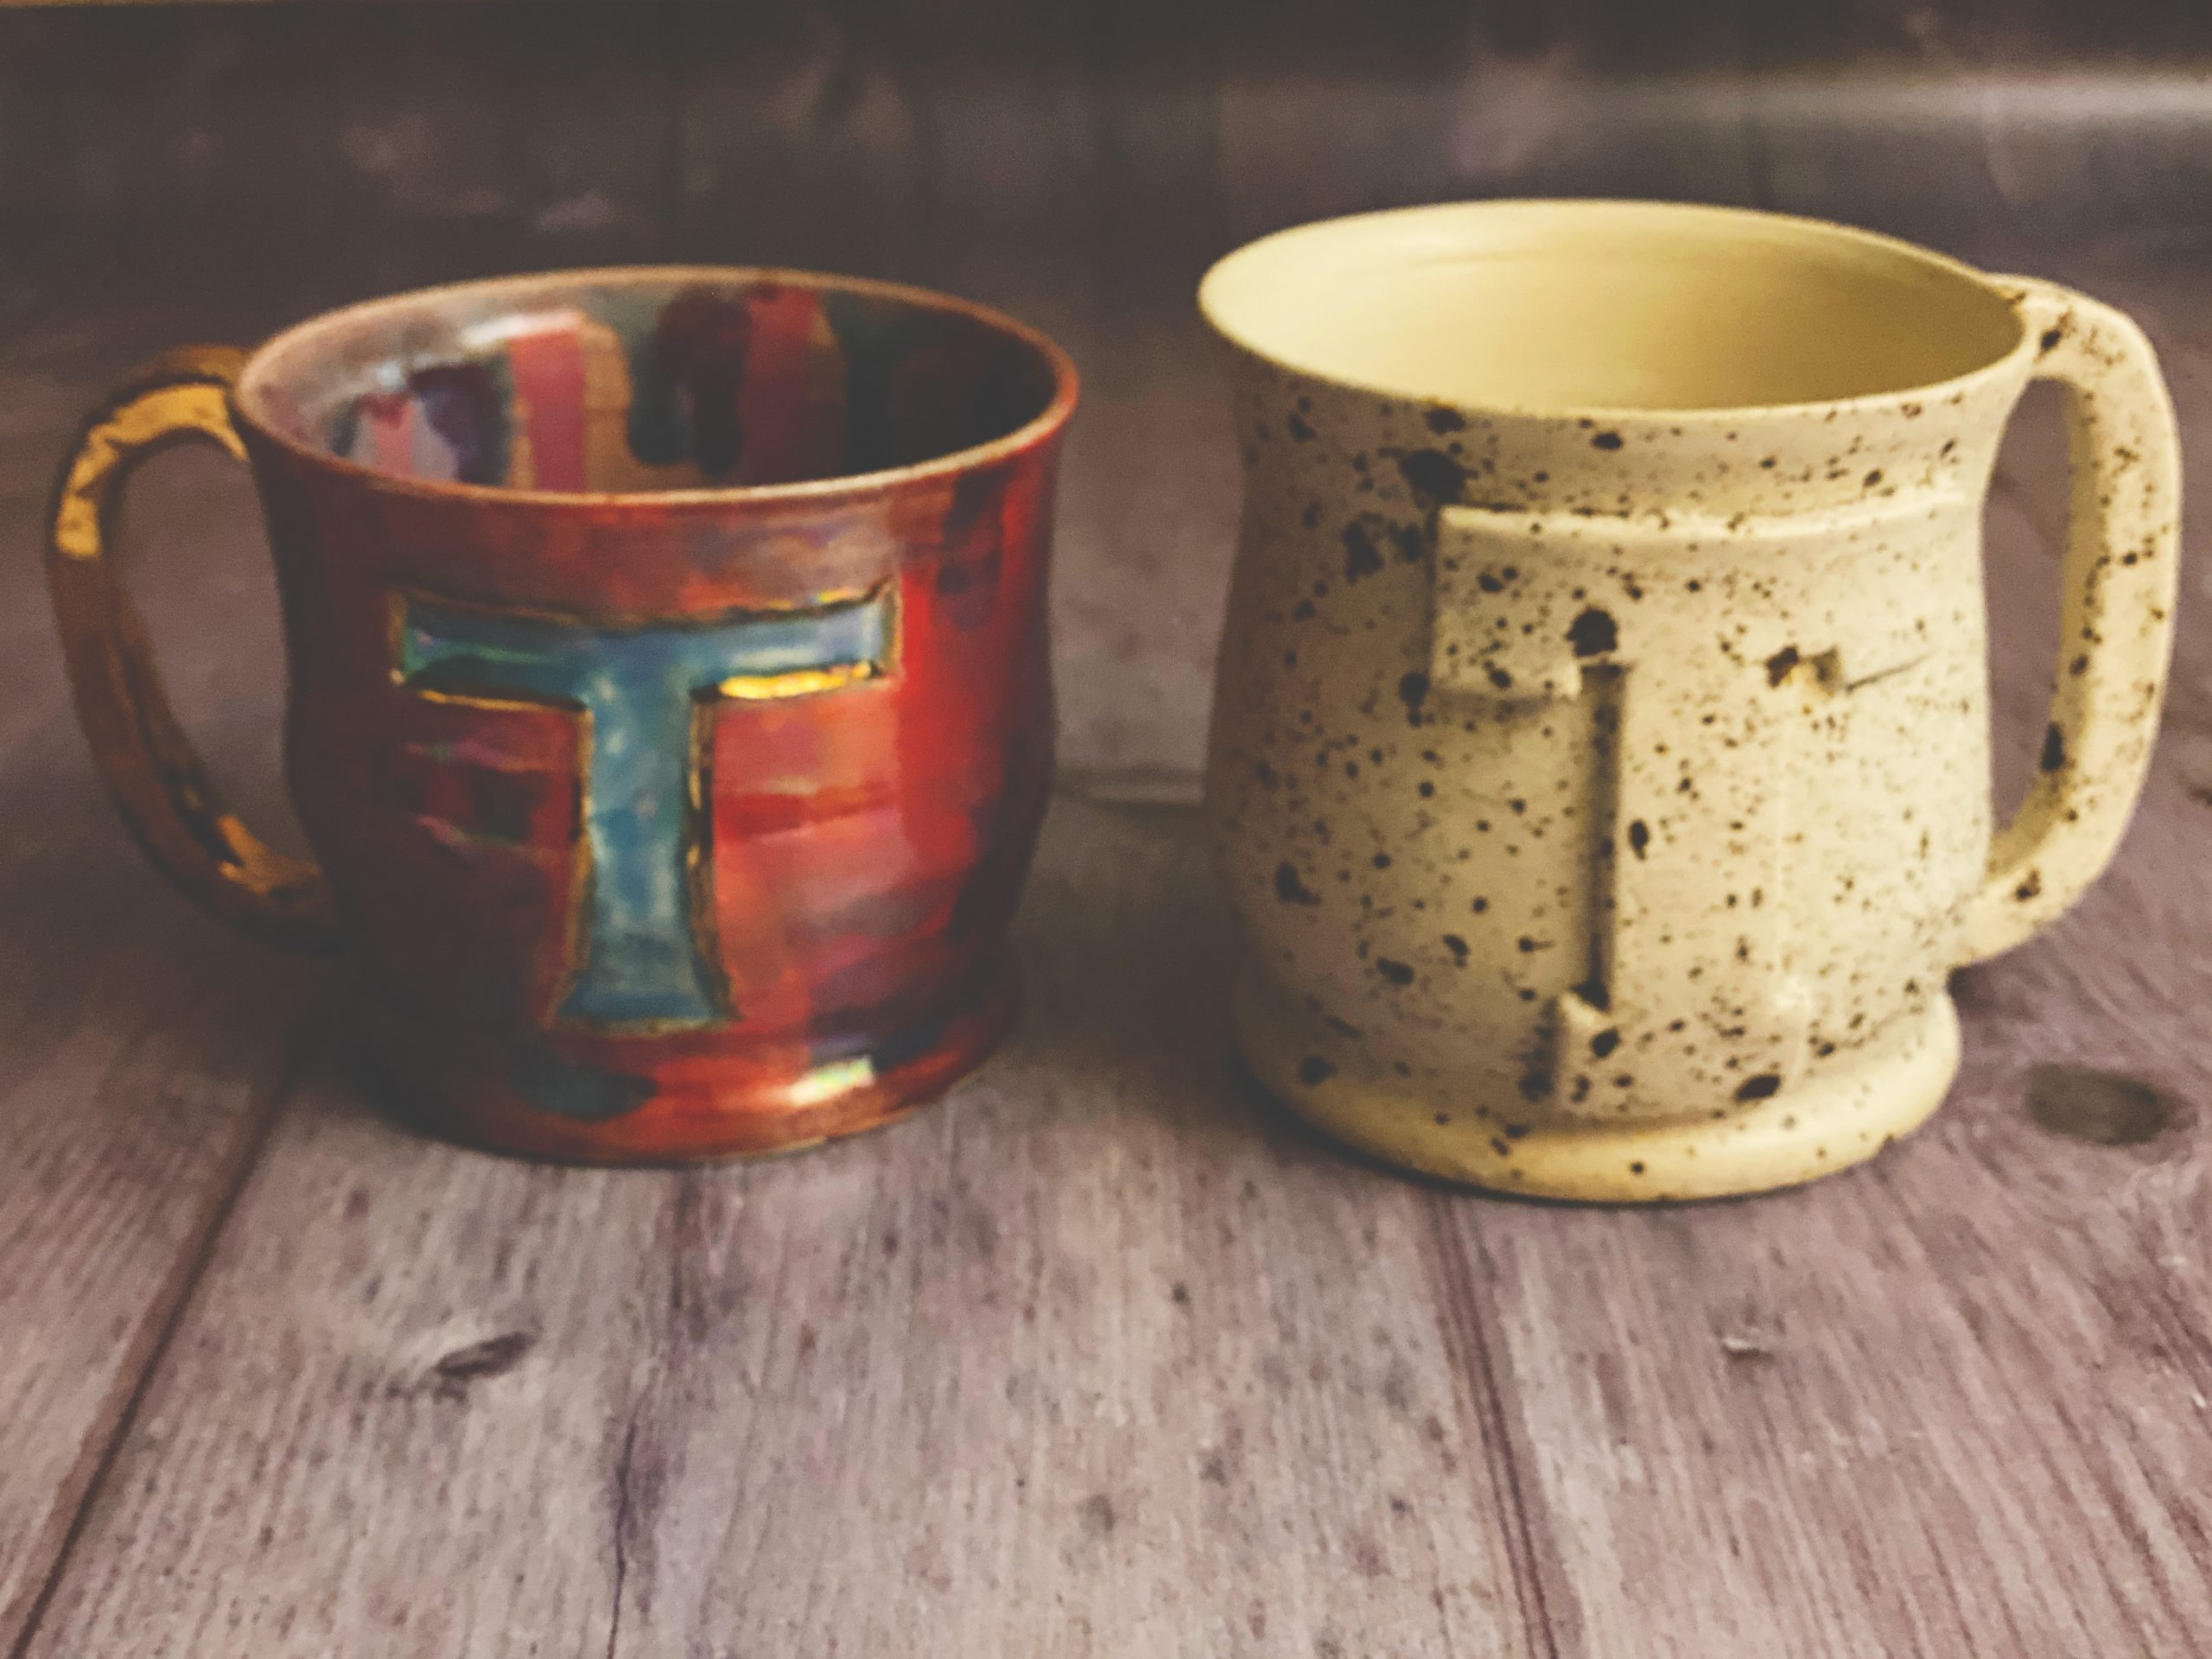 Two hand made mugs, one is cream and one is red but both have the letter T on the front